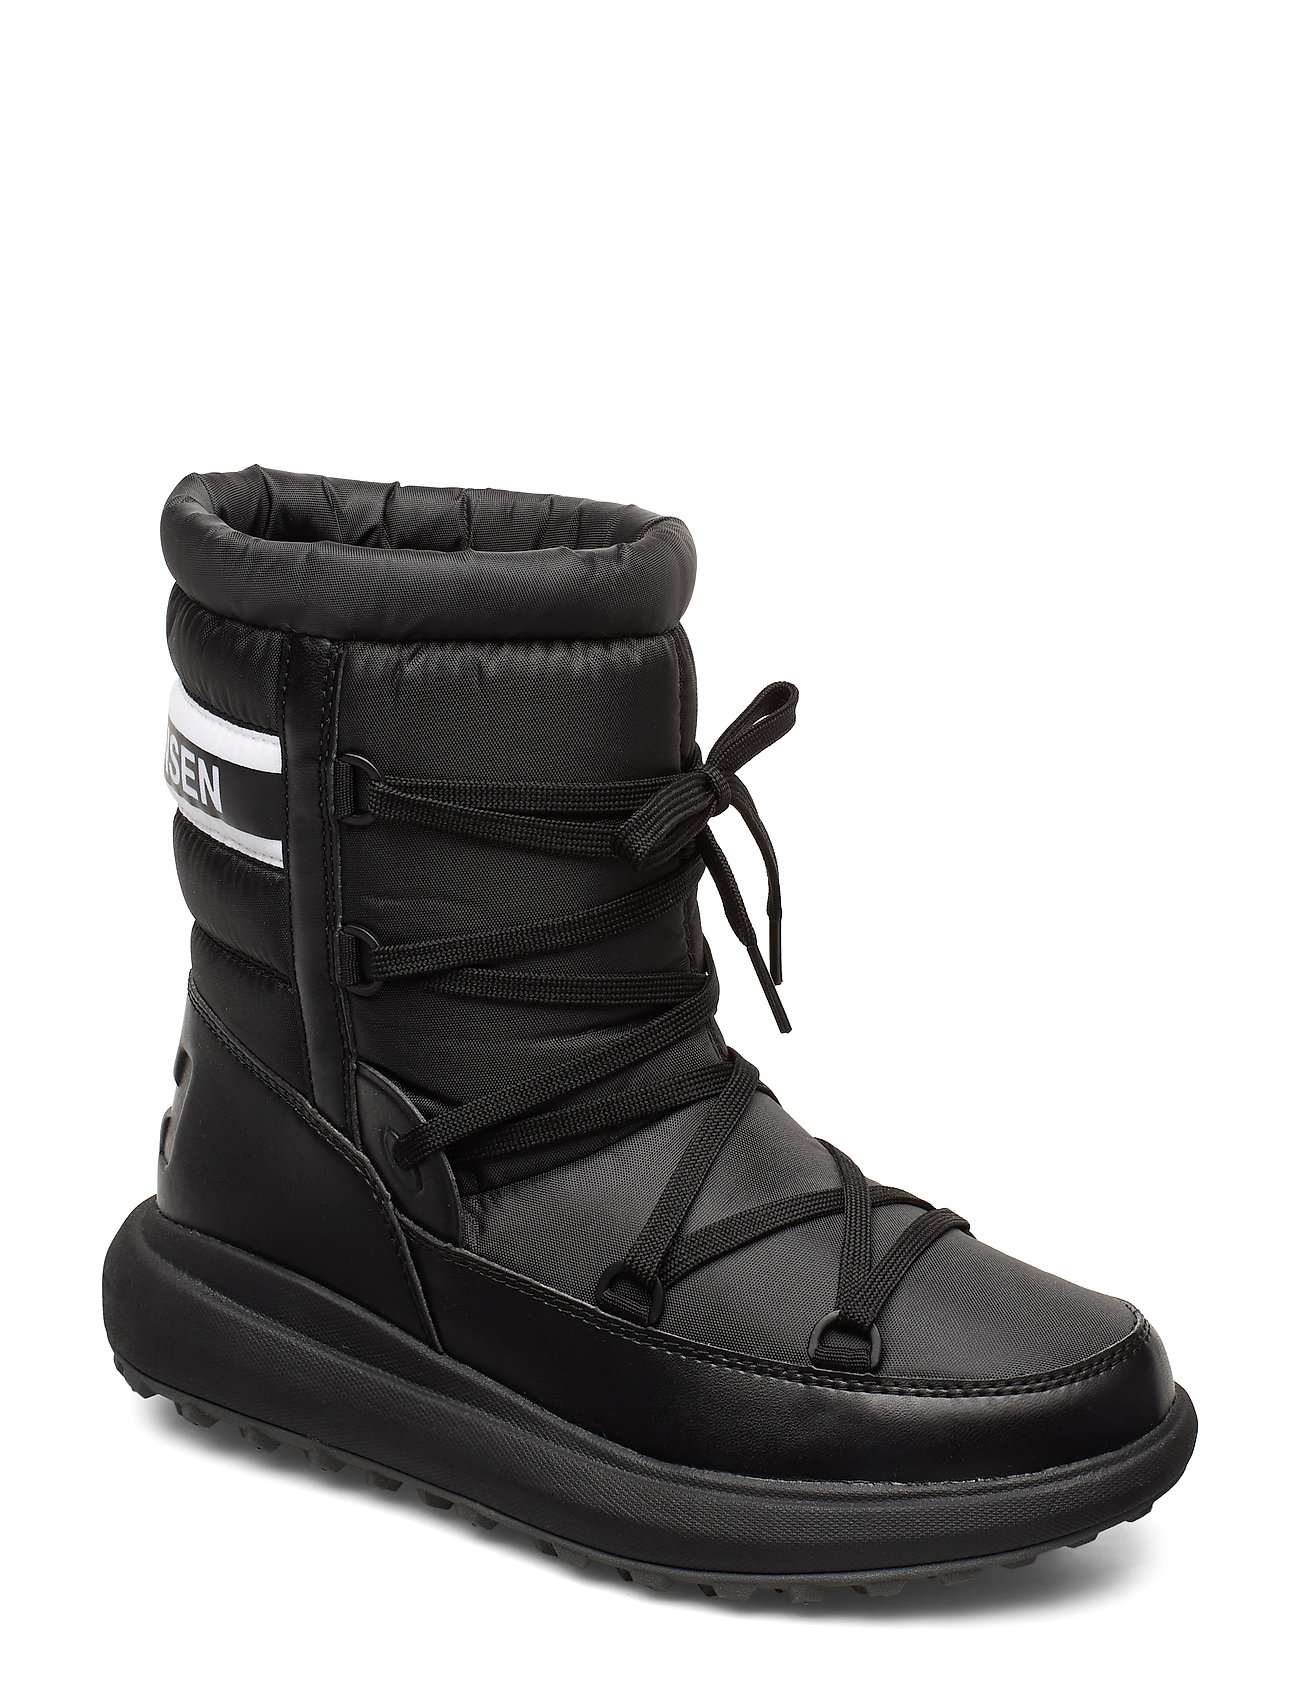 Image of W Isolabella Court Shoes Boots Ankle Boots Ankle Boot - Flat Sort Helly Hansen (3459218907)